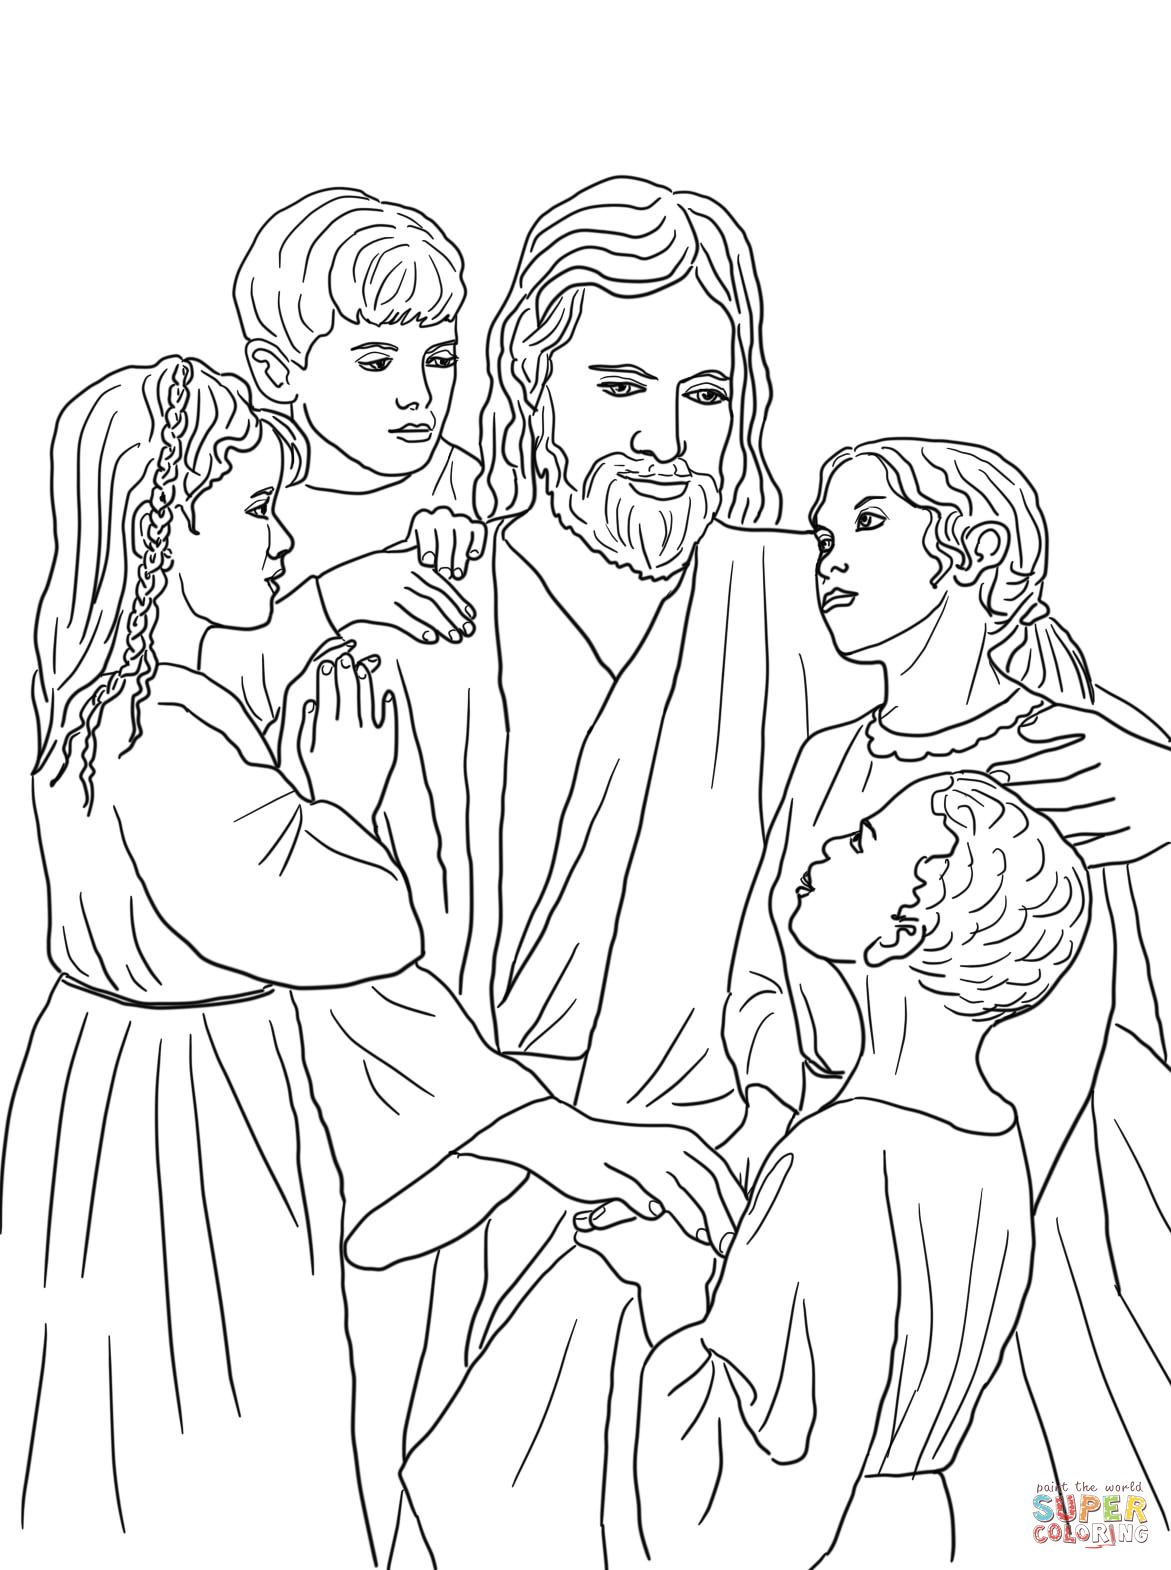 Free Coloring Page Of Jesus And The Children